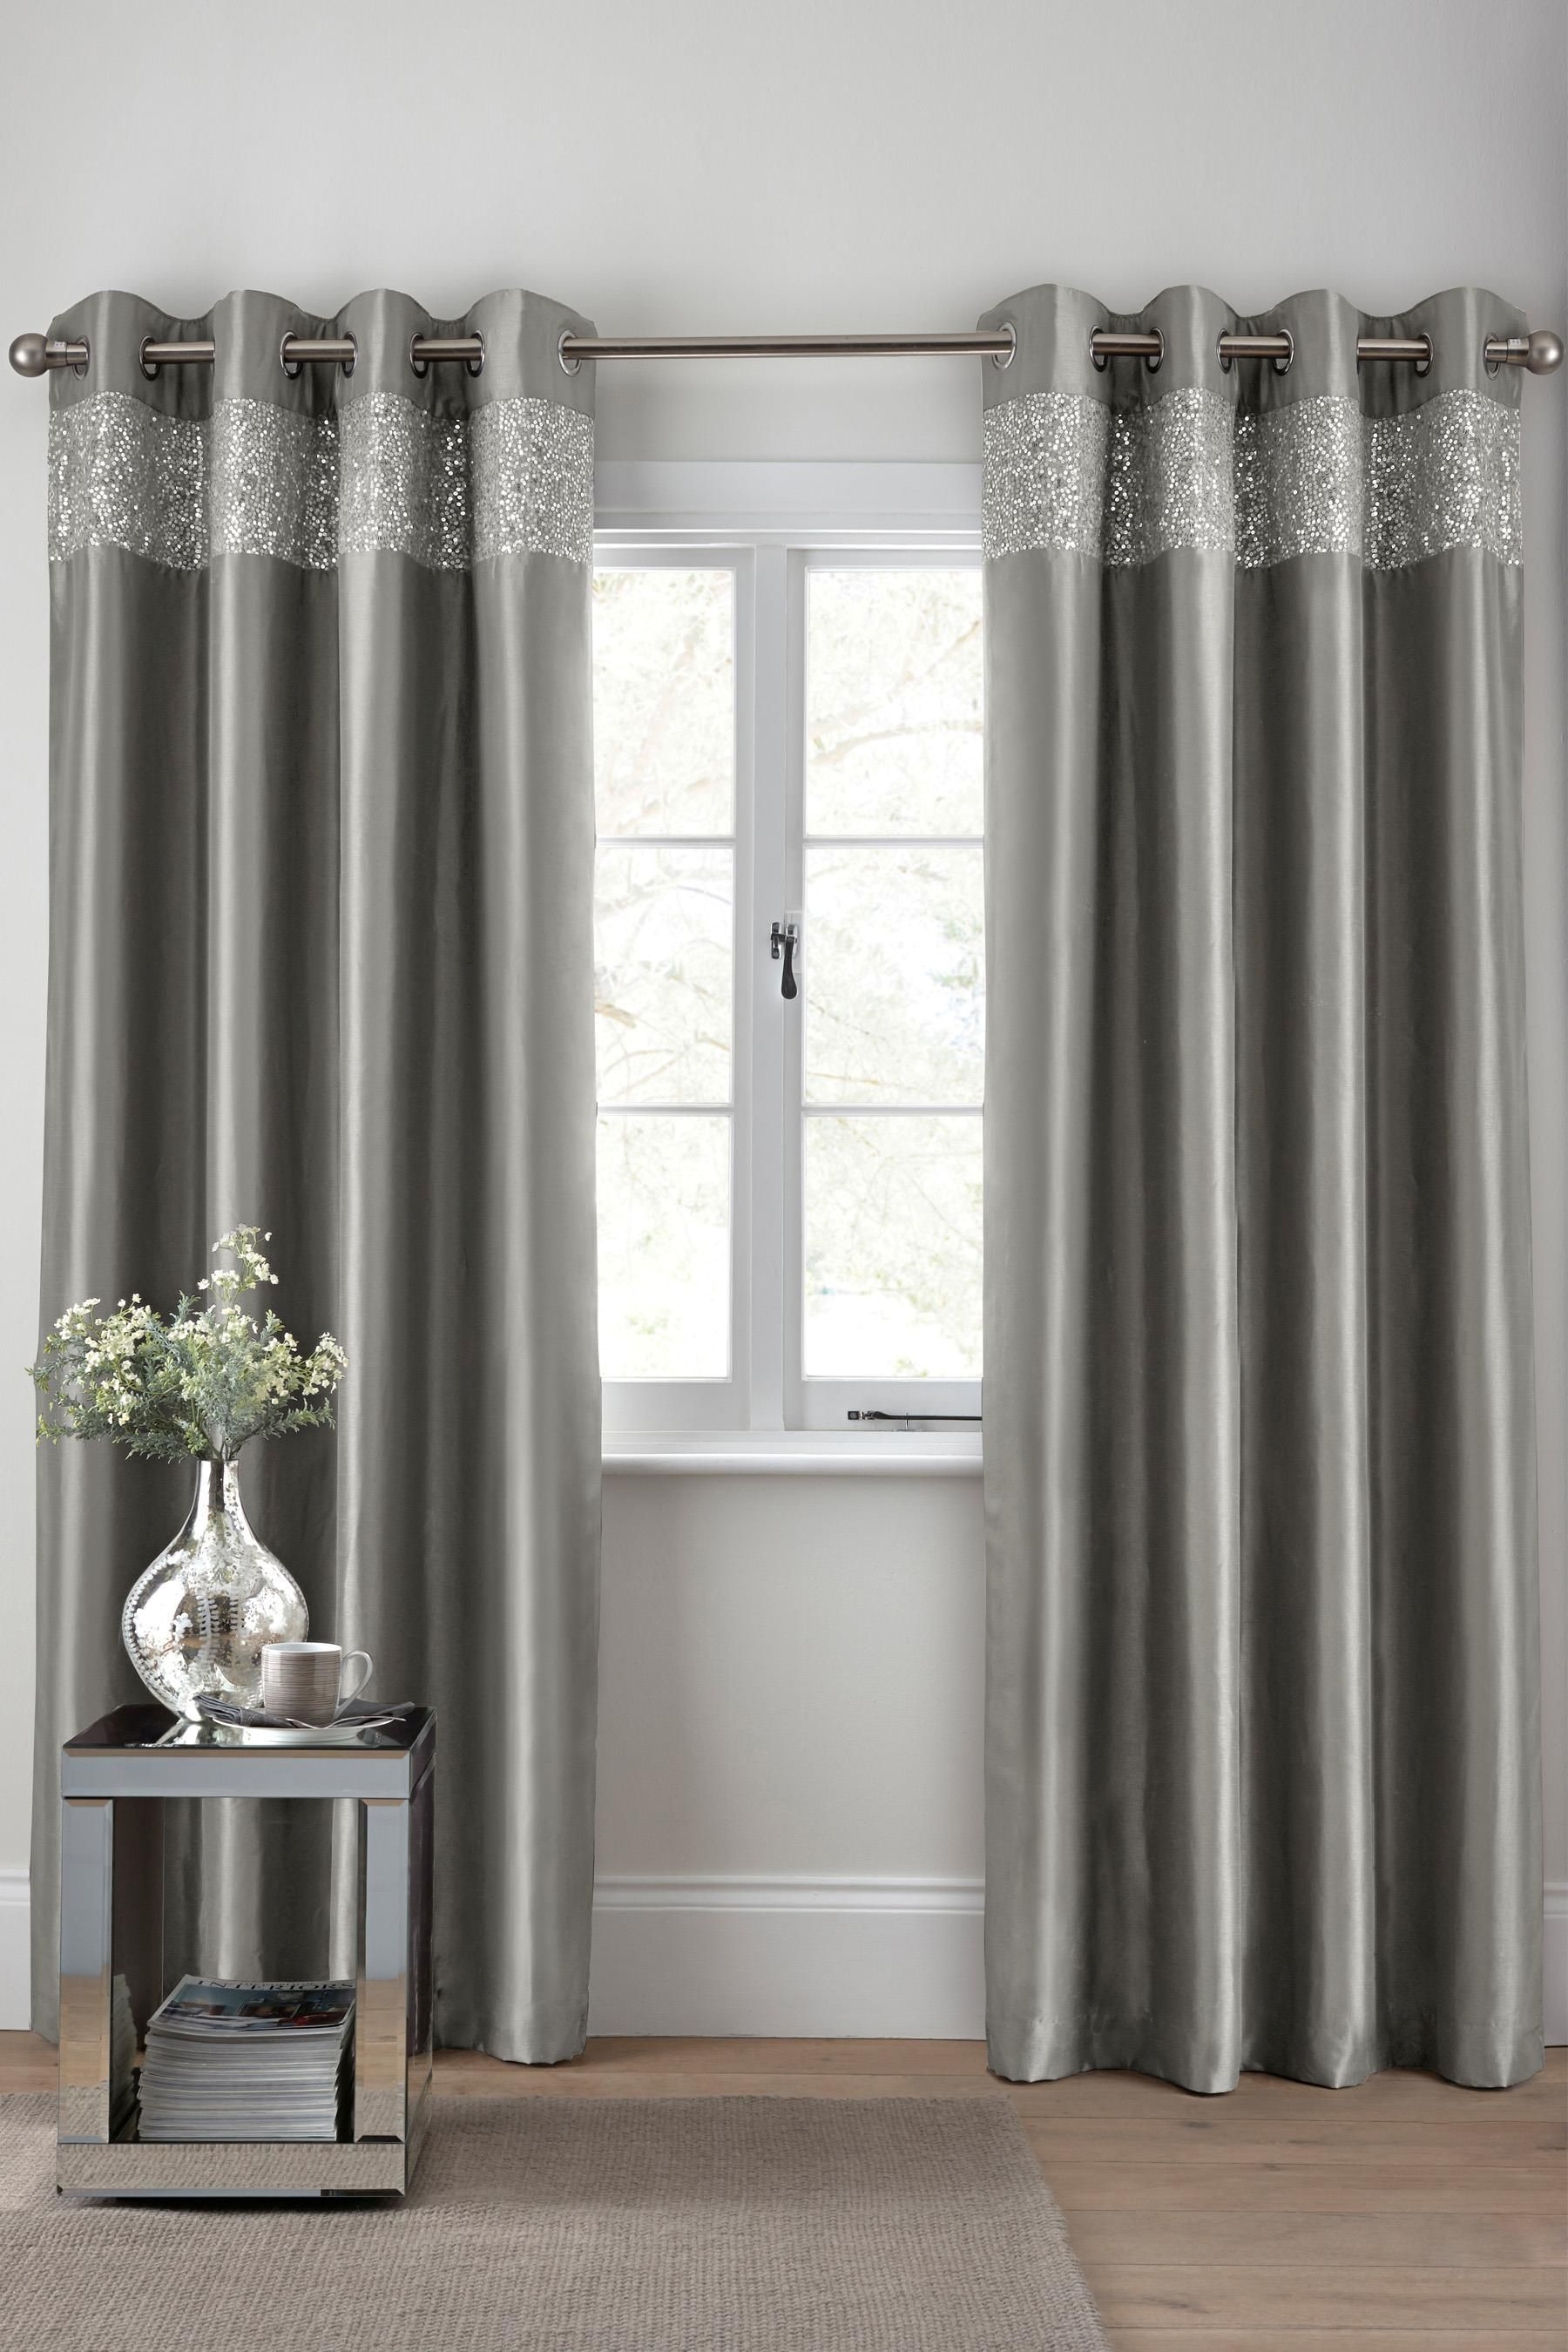 Cute kids bedroom curtains ideas and color options pmc interiors - Buy Shimmer Band Eyelet Curtains From The Next Uk Online Shop